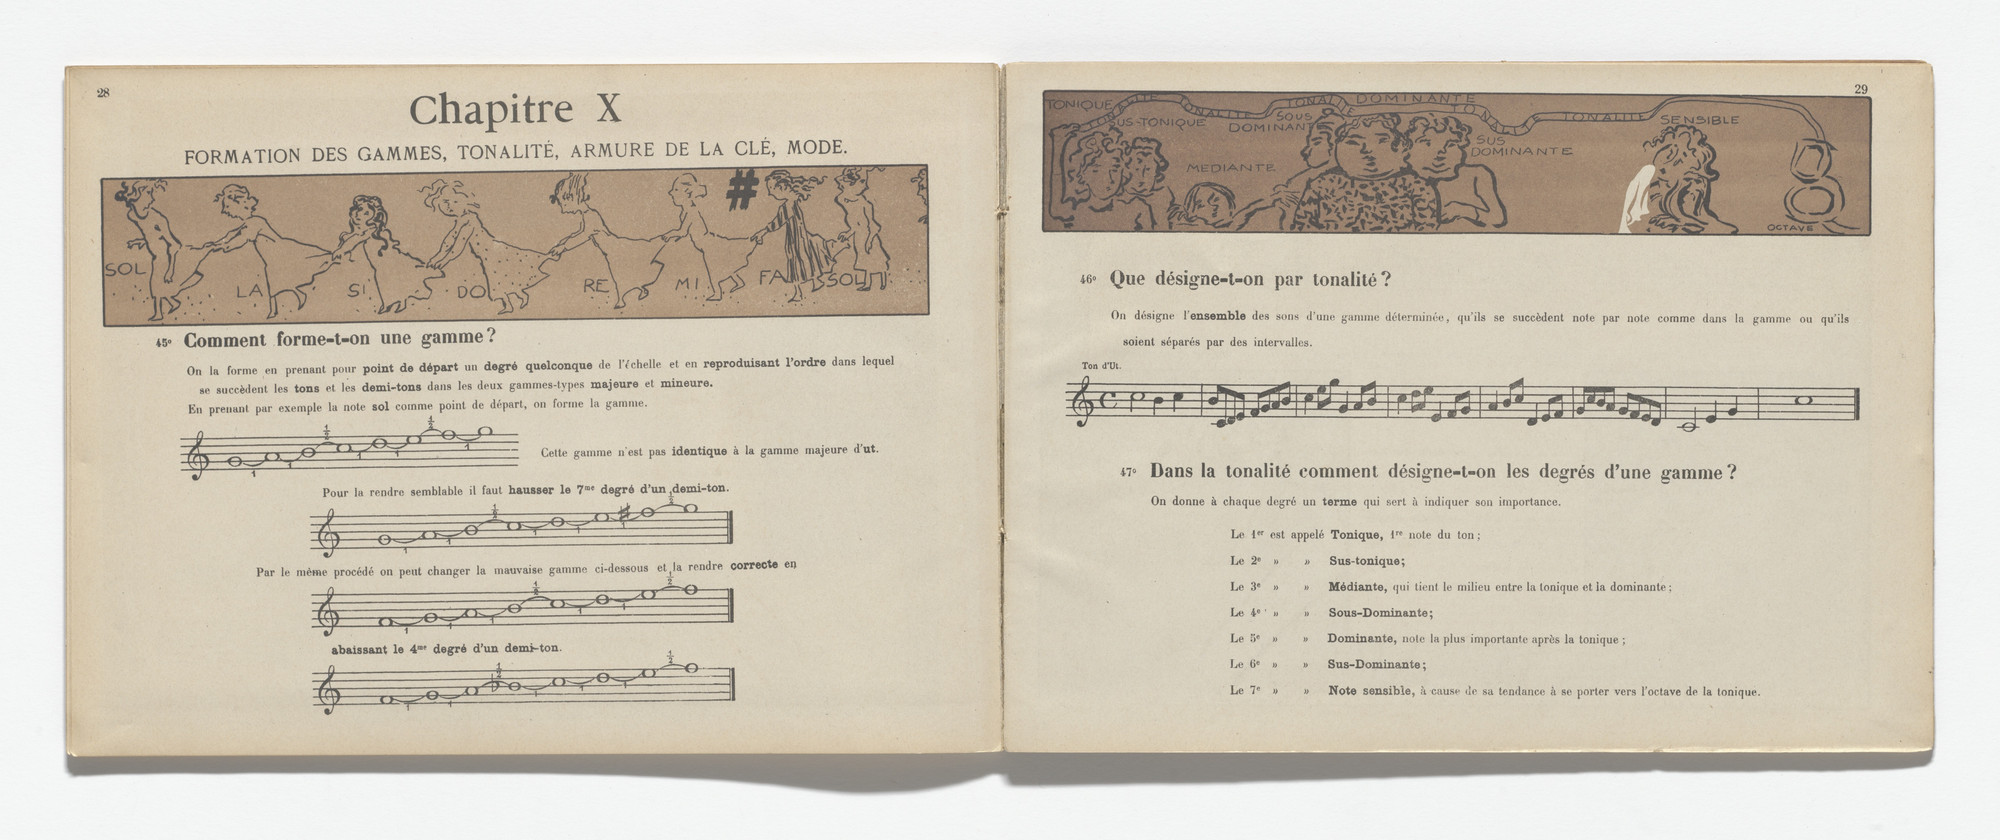 Pierre Bonnard. In-text plate (page 29) from Petit solfège illustré (Little Illustrated Solfège). 1893 (reproduced drawings executed 1891–93)